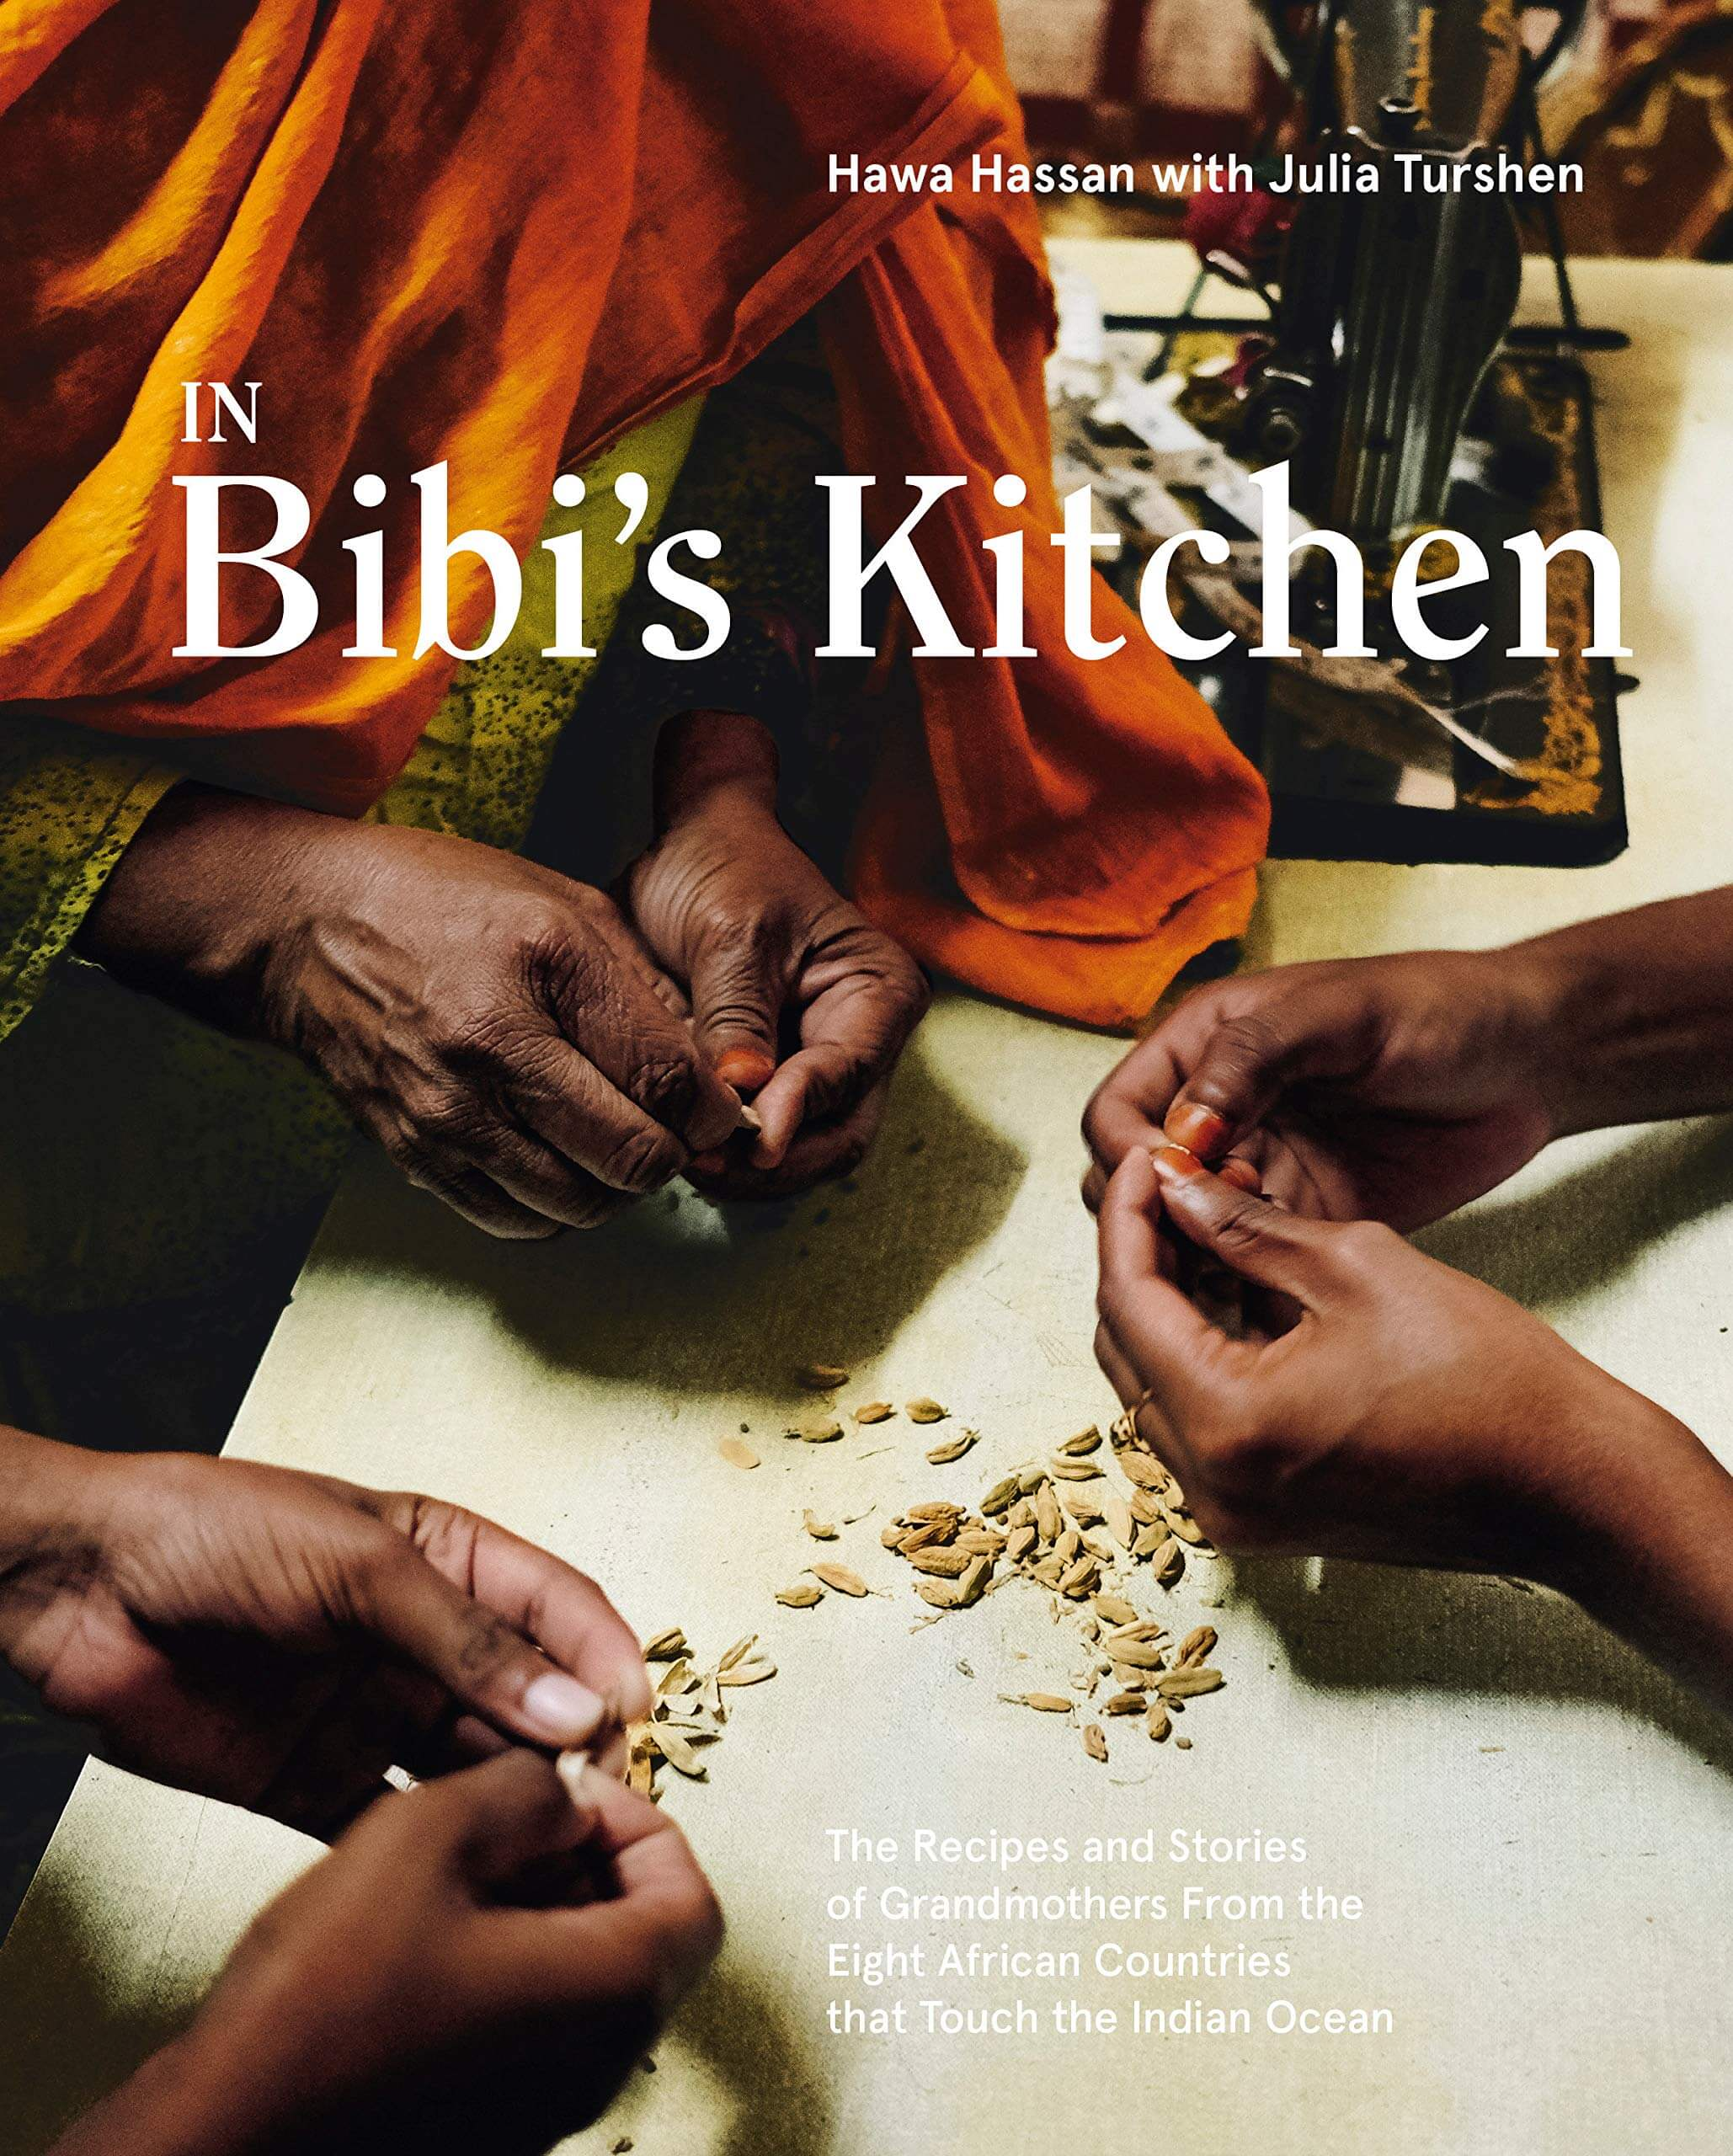 In Bibi's Kitchen cover imagee